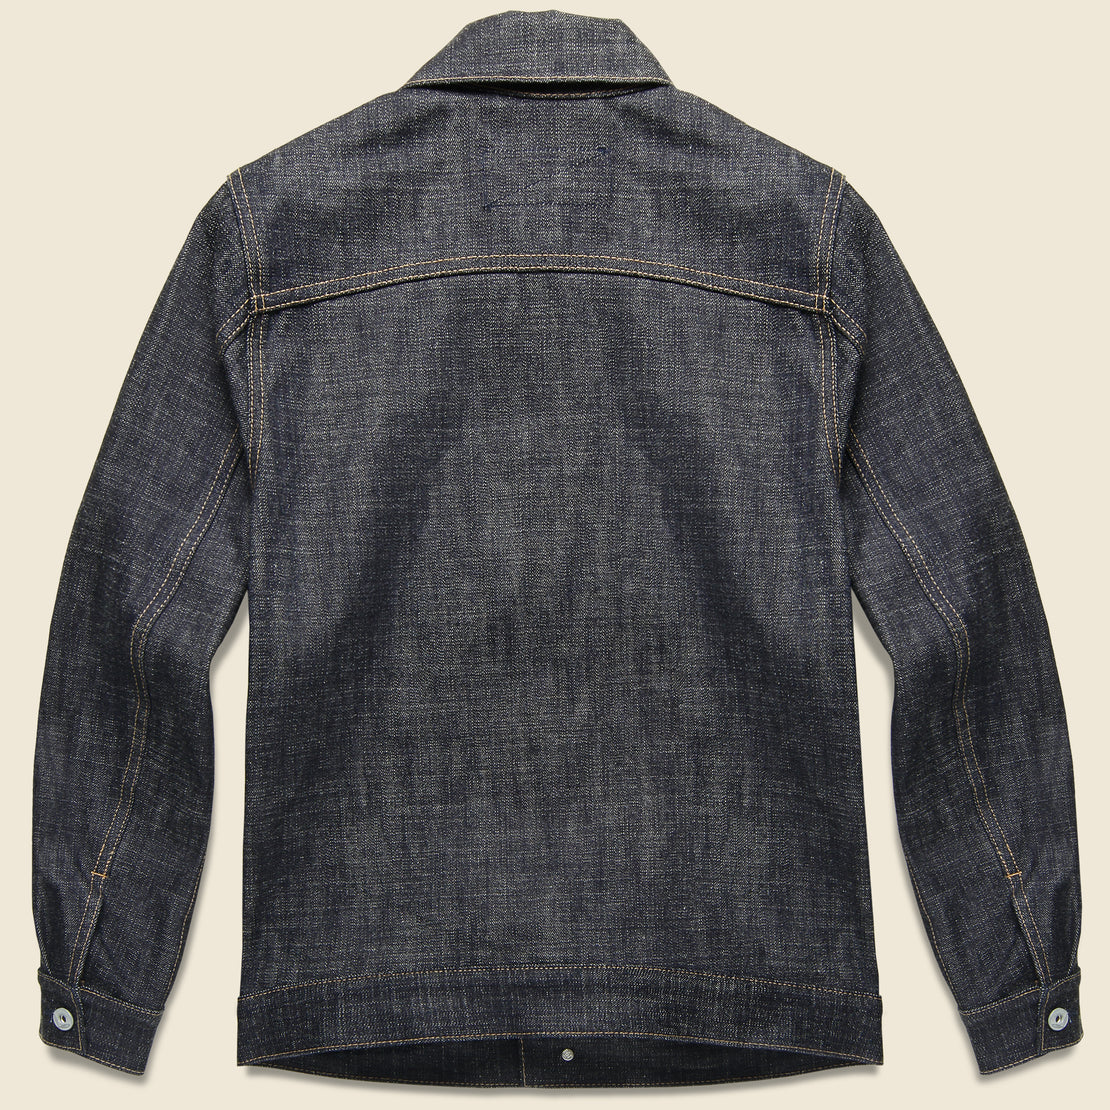 Denim Cruiser Jacket - Cryptic Indigo